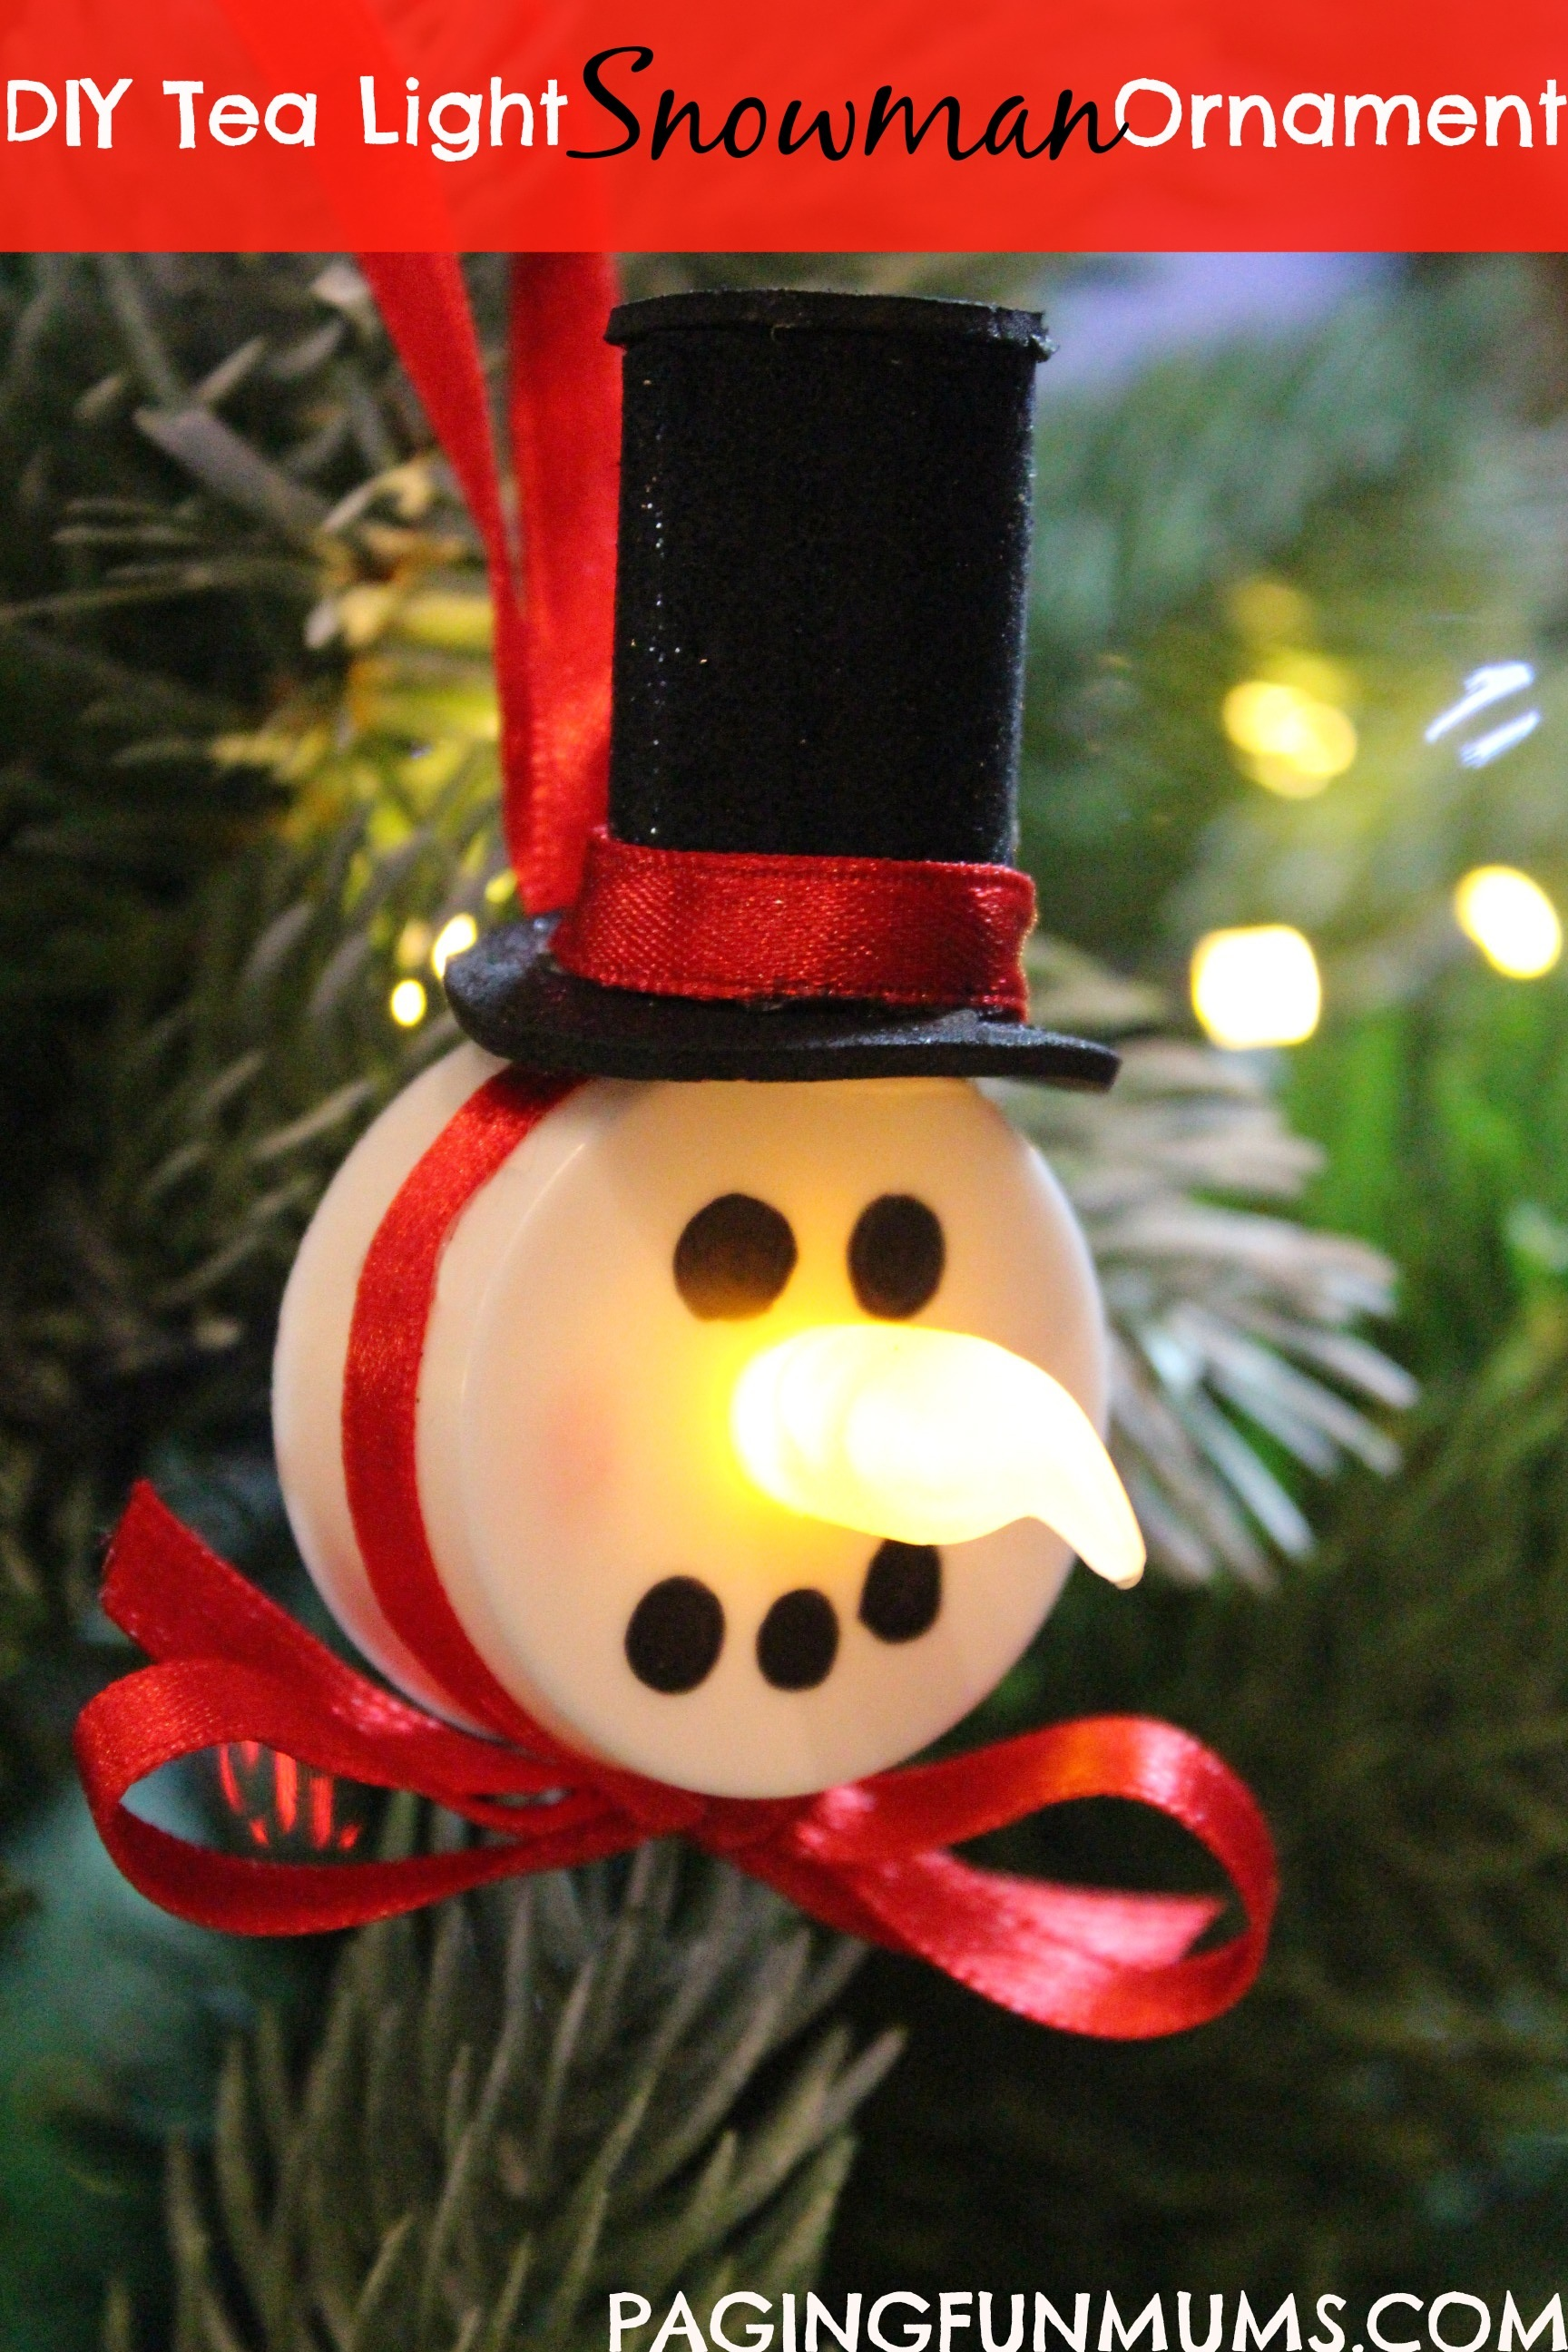 Tea Light Snowman Ornament